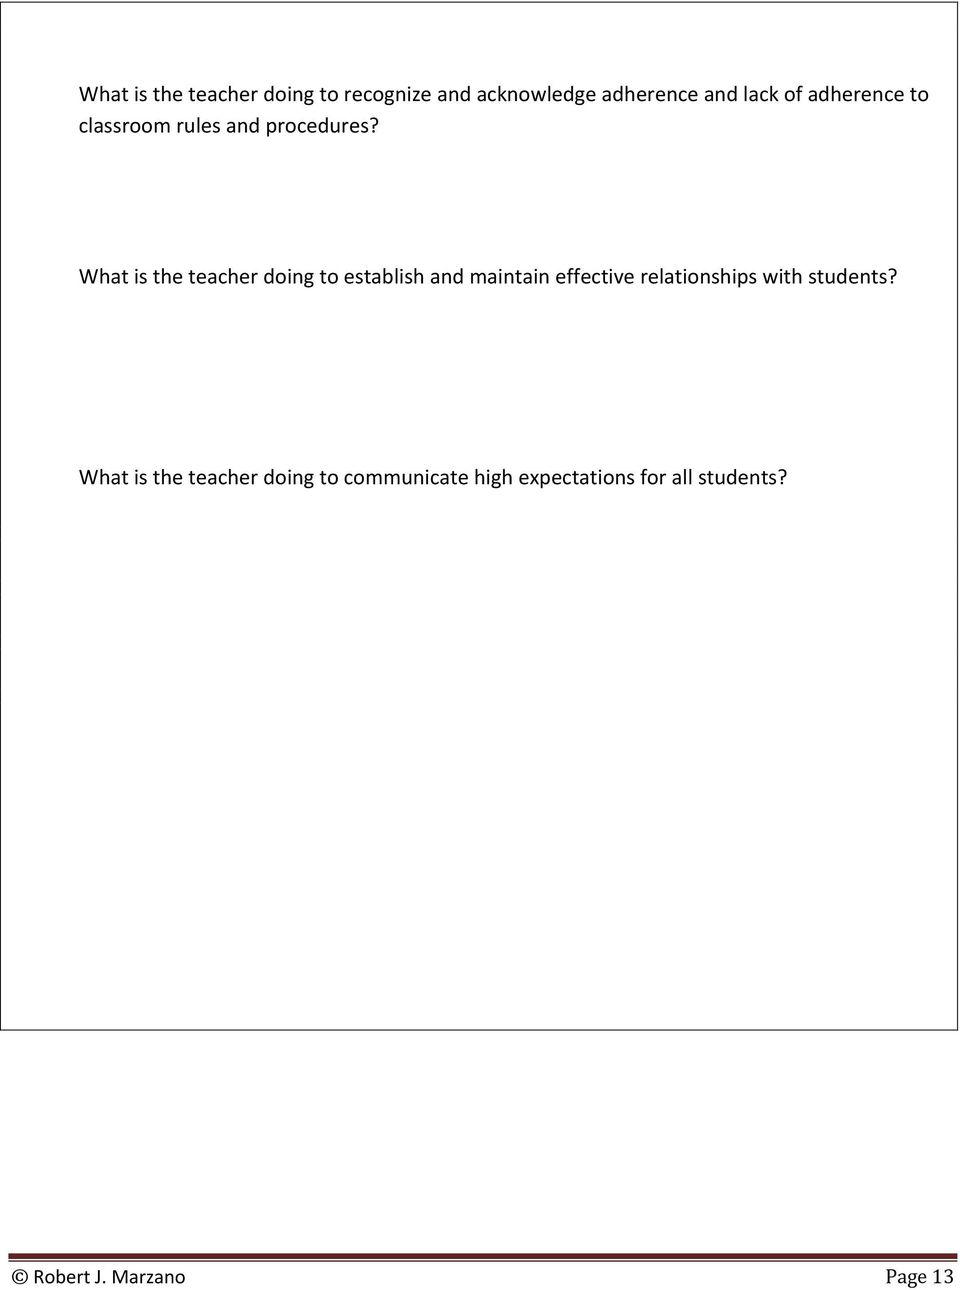 What is the teacher doing to establish and maintain effective relationships